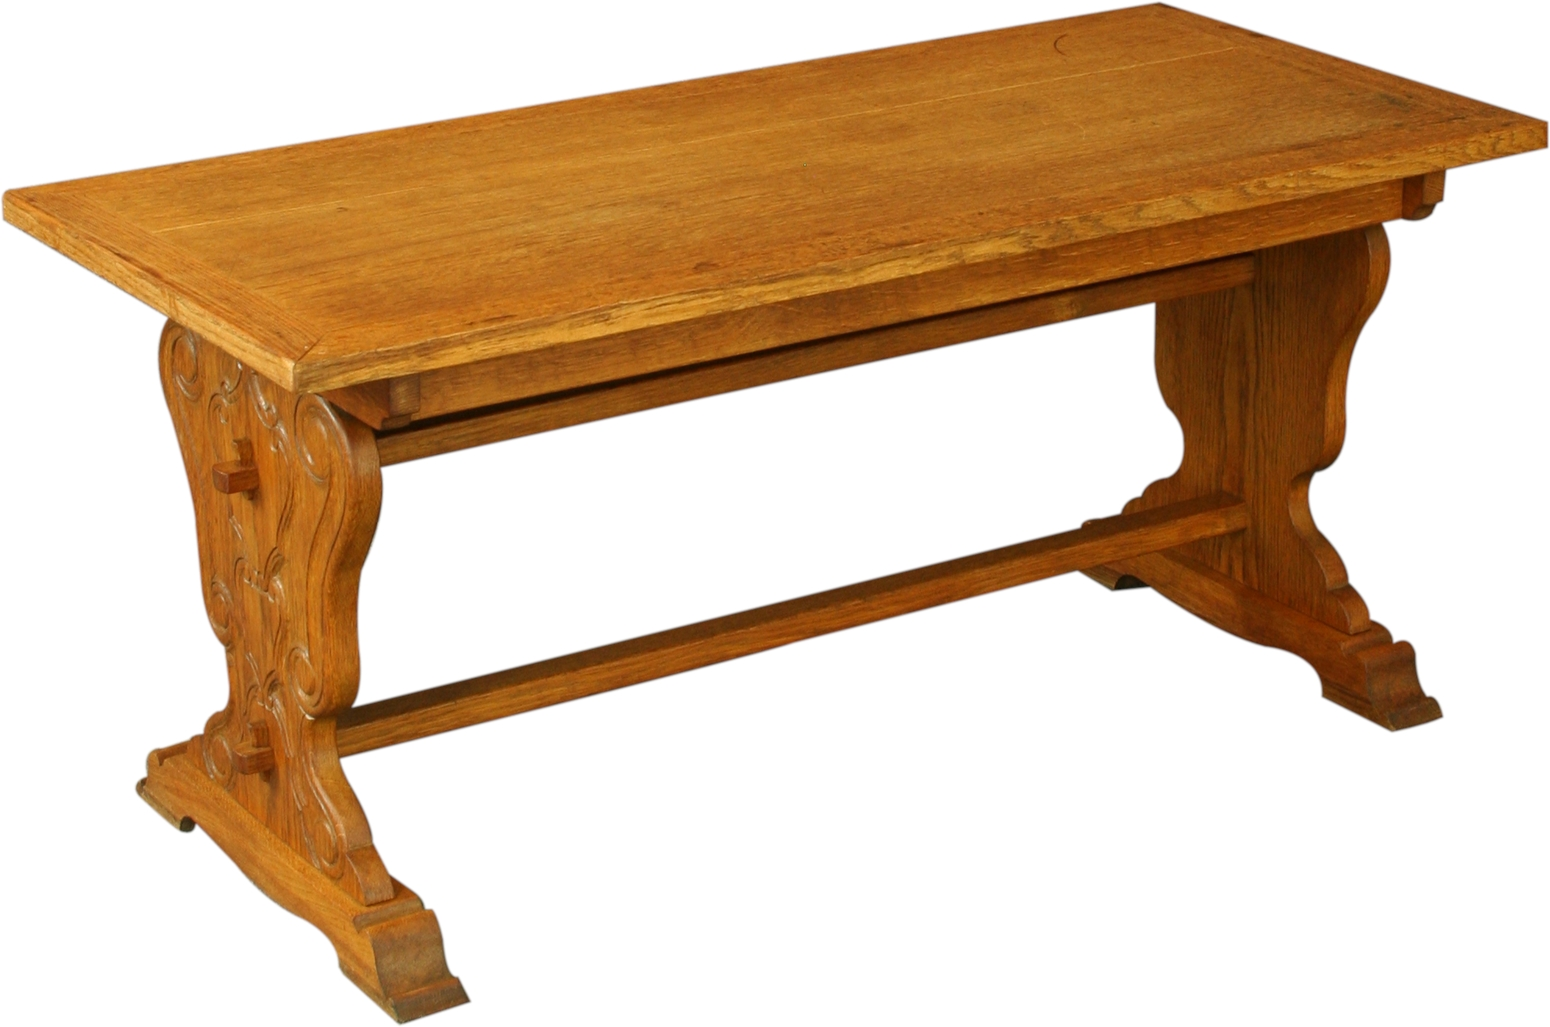 Vintage 1950 French Coffee Table Spanish Renaissance Style Carved Oak Ebay